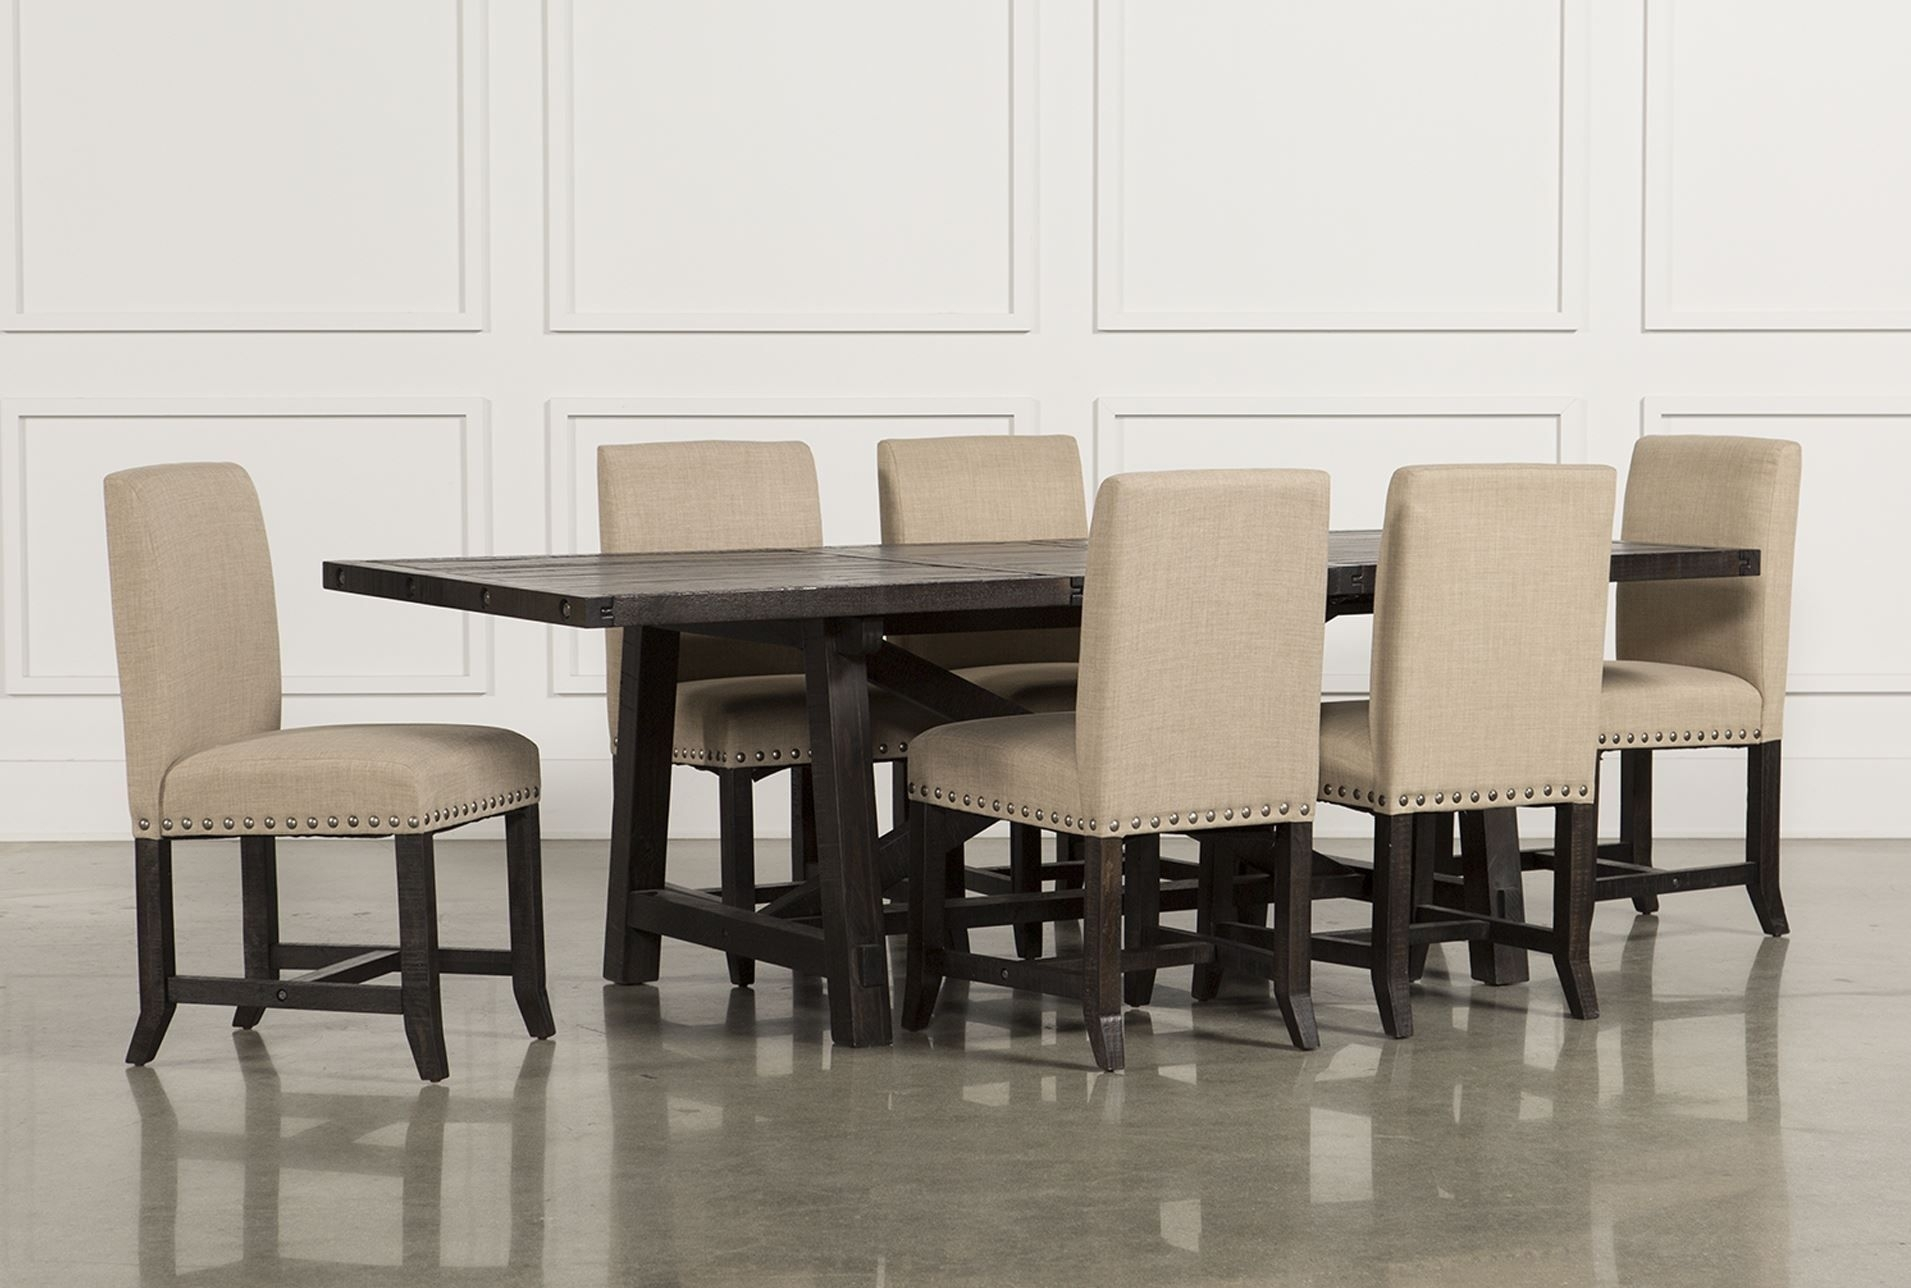 Jaxon 7 Piece Rectangle Dining Set W/upholstered Chairs | For The Pertaining To Most Recently Released Combs 5 Piece Dining Sets With  Mindy Slipcovered Chairs (Image 12 of 20)